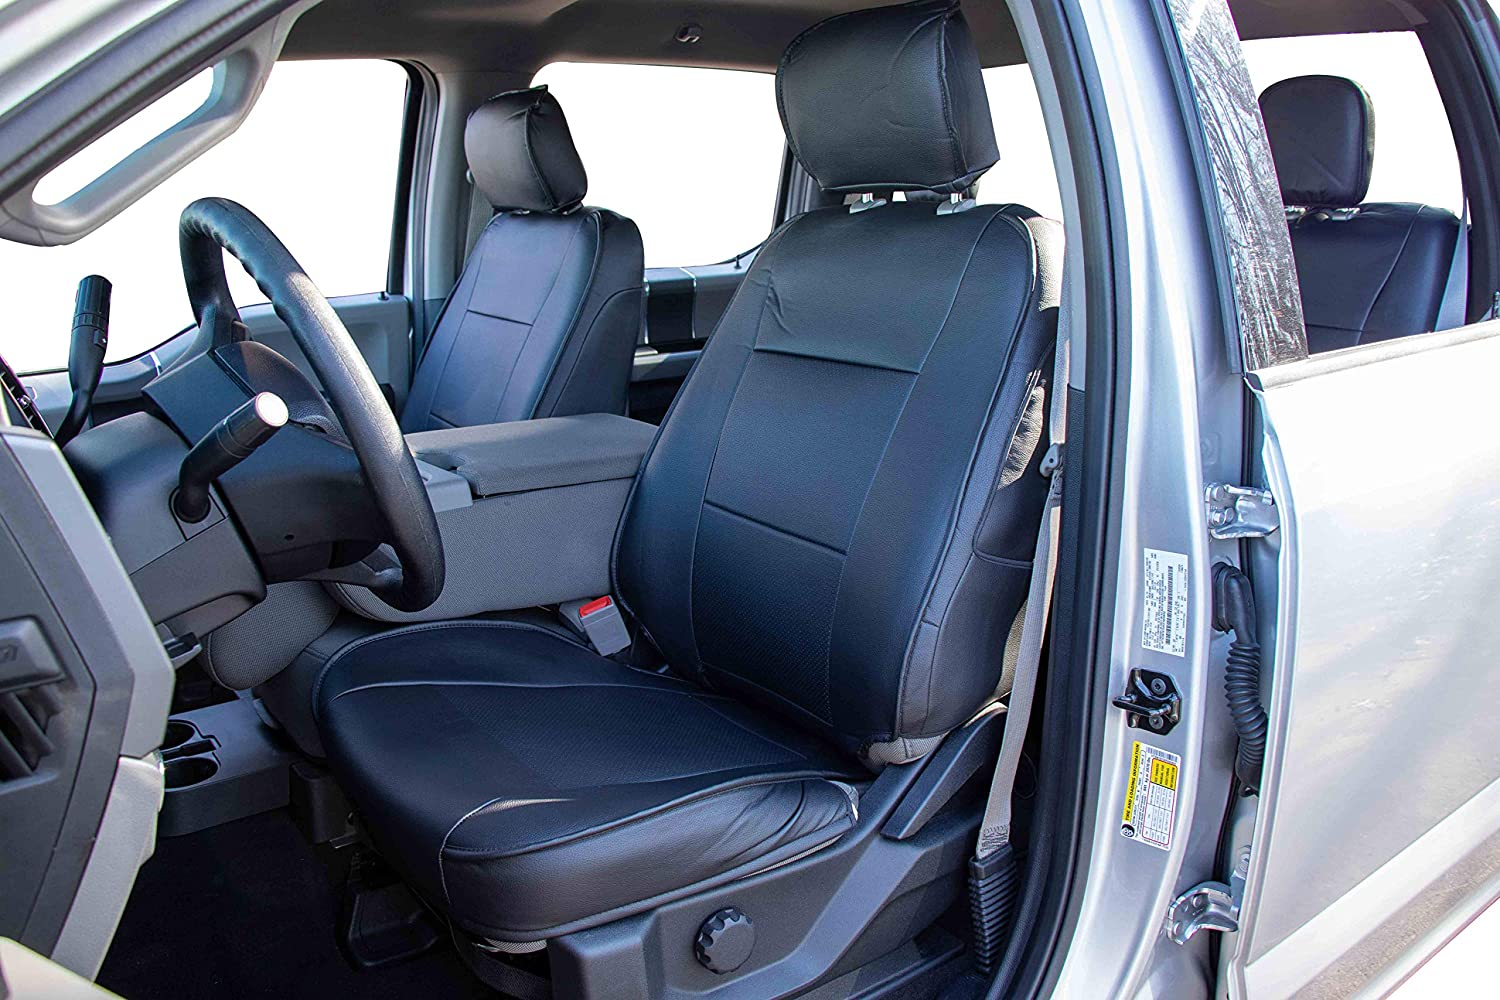 2009-2018 Ram 1500 Truck 09-18 Ram1500/&10-18 2500//3500, Black OASIS AUTO 2010-2018 2500/&3500  Custom Fit PU Leather Seat Covers Full Set Compatible with Ram Pick-up Truck Crew and Double Cab